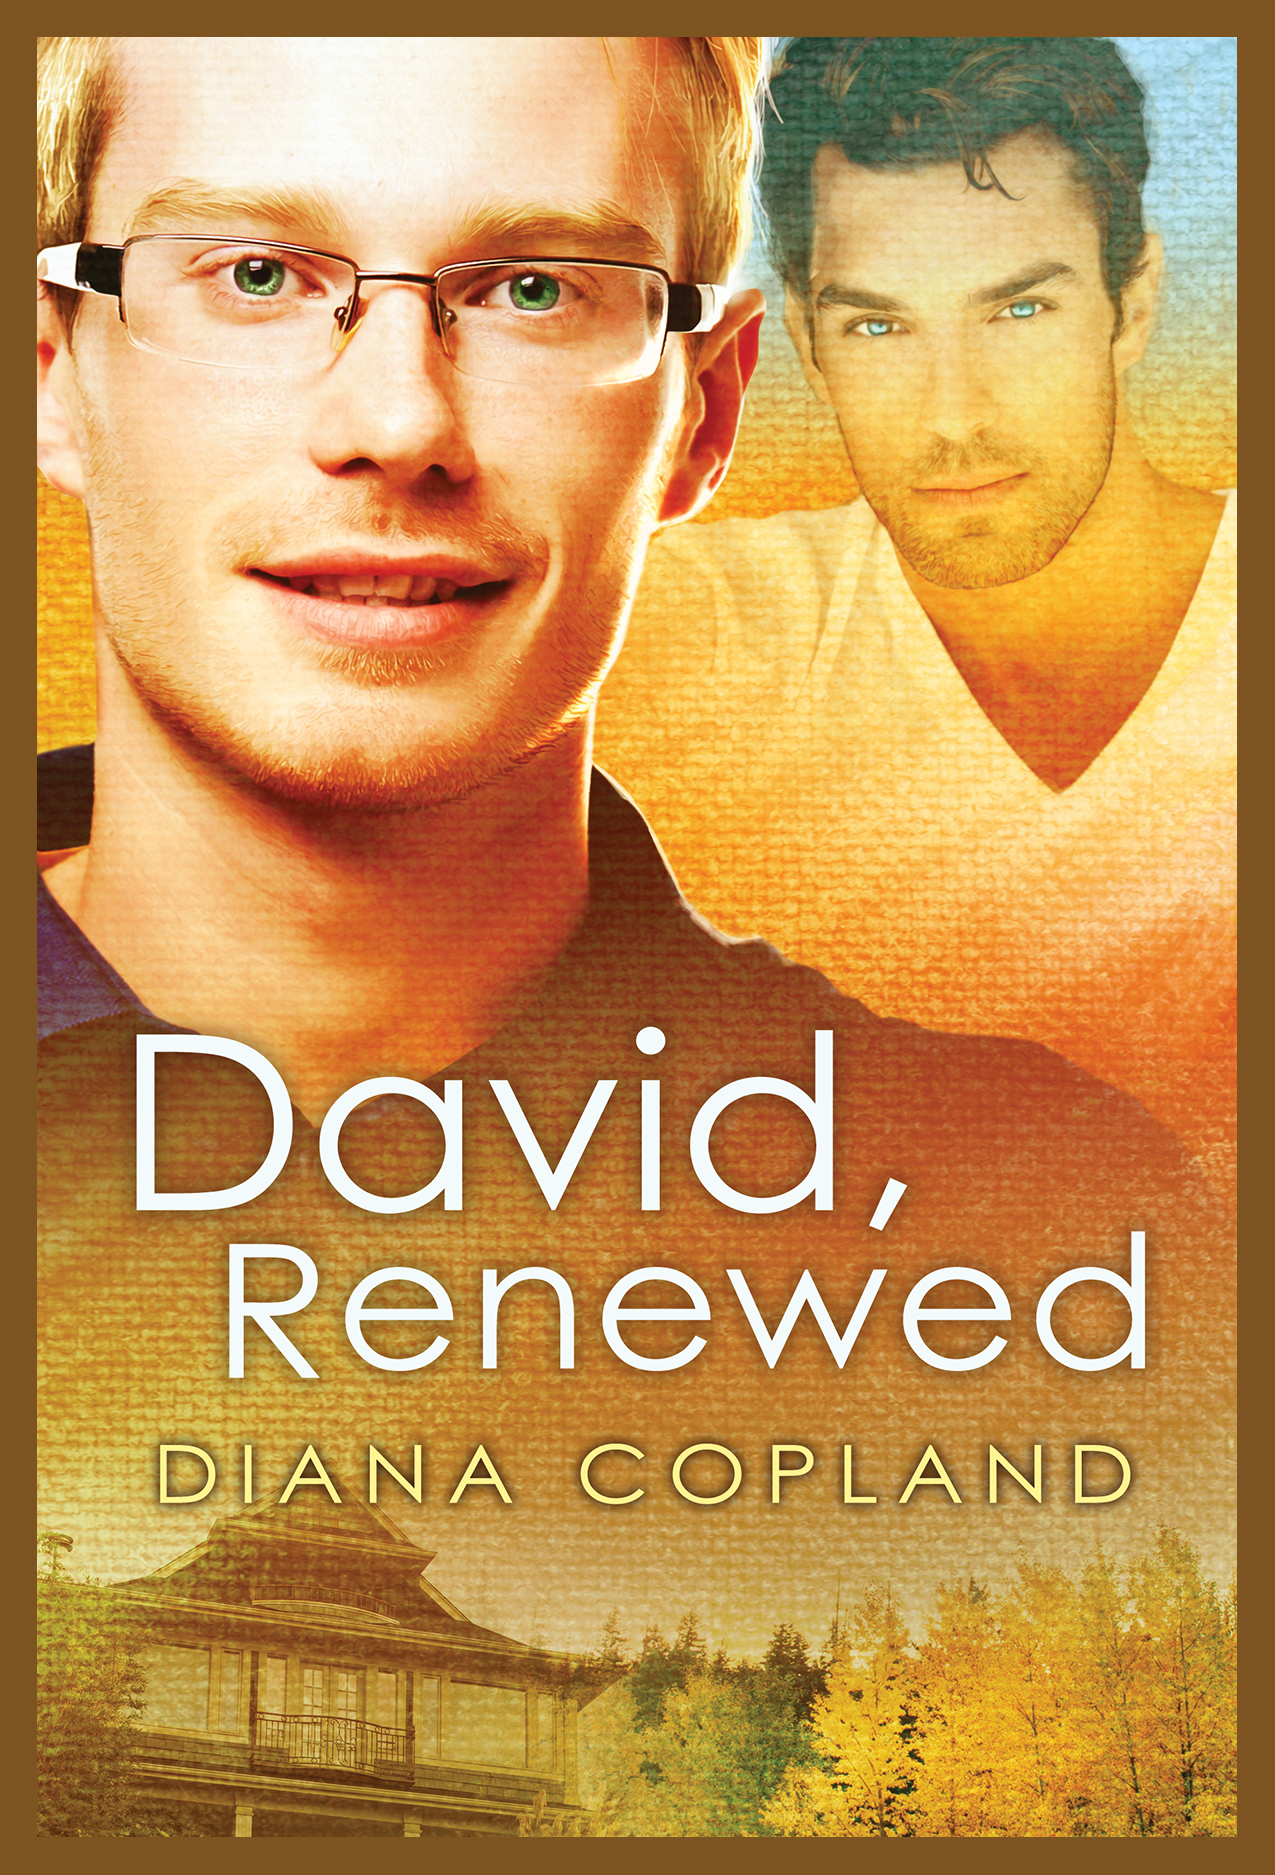 David, Renewed by Diana Copland